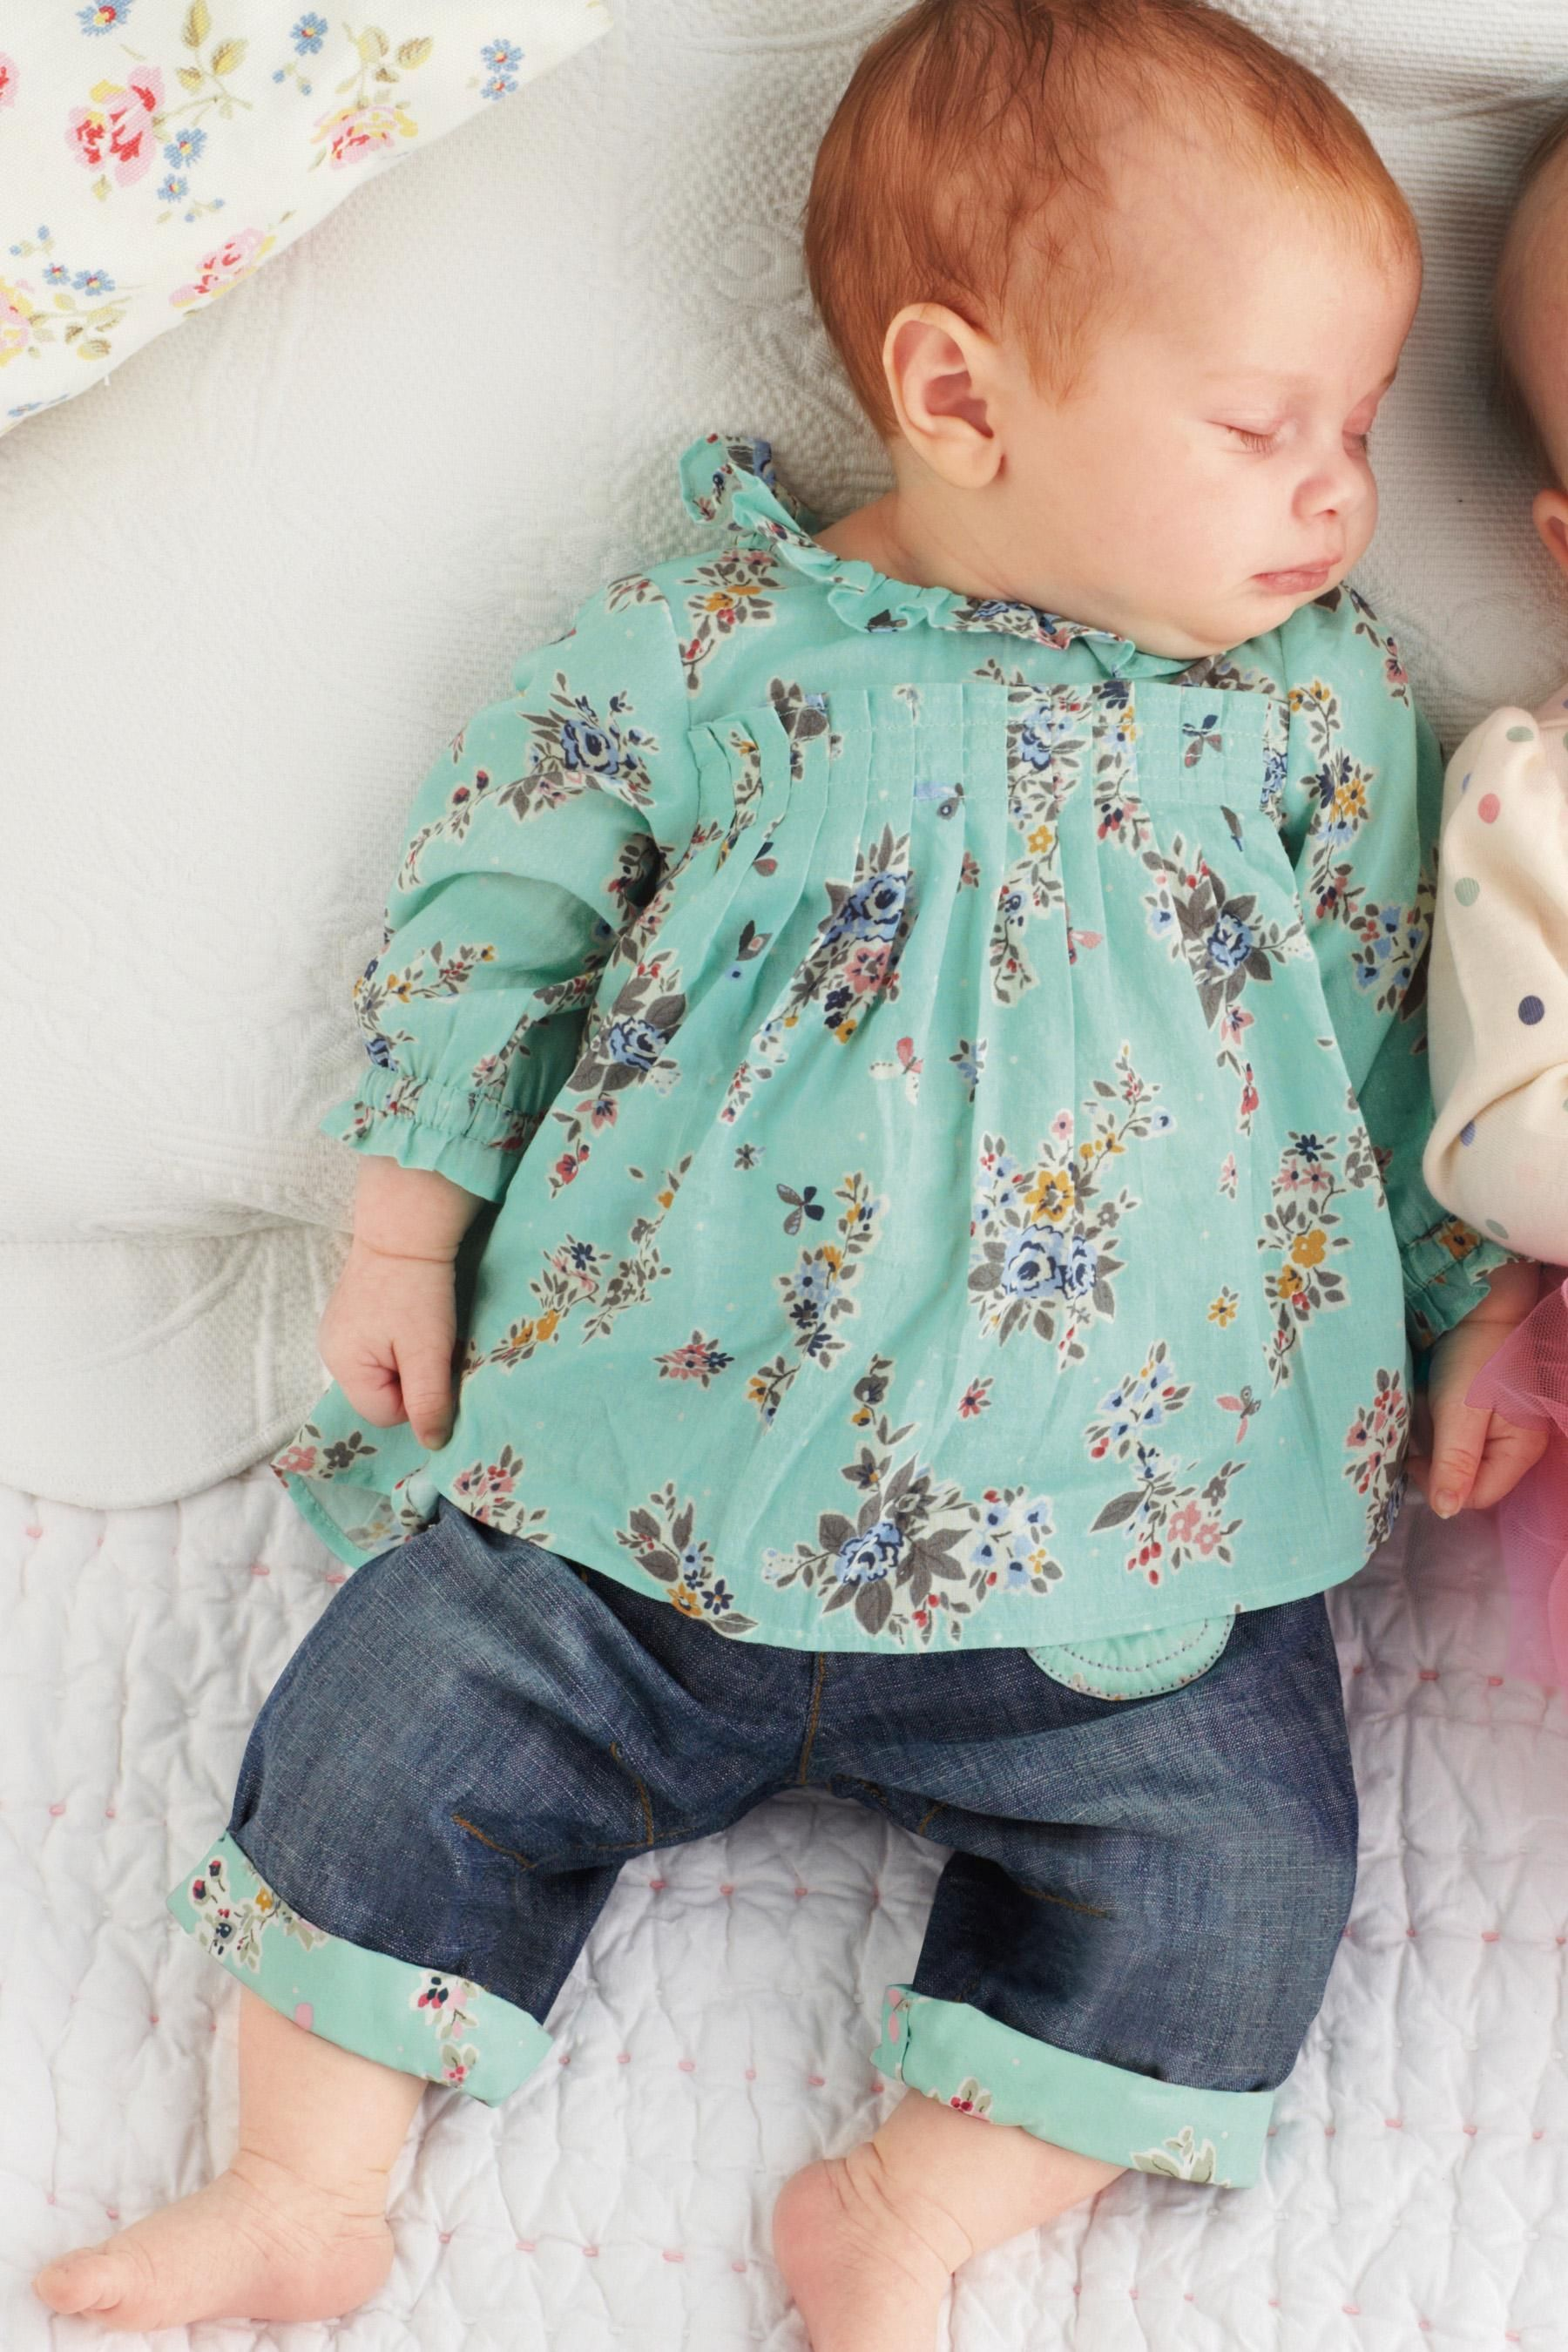 Buy Green Ditsy Blouse 0 18mths from the Next UK online shop